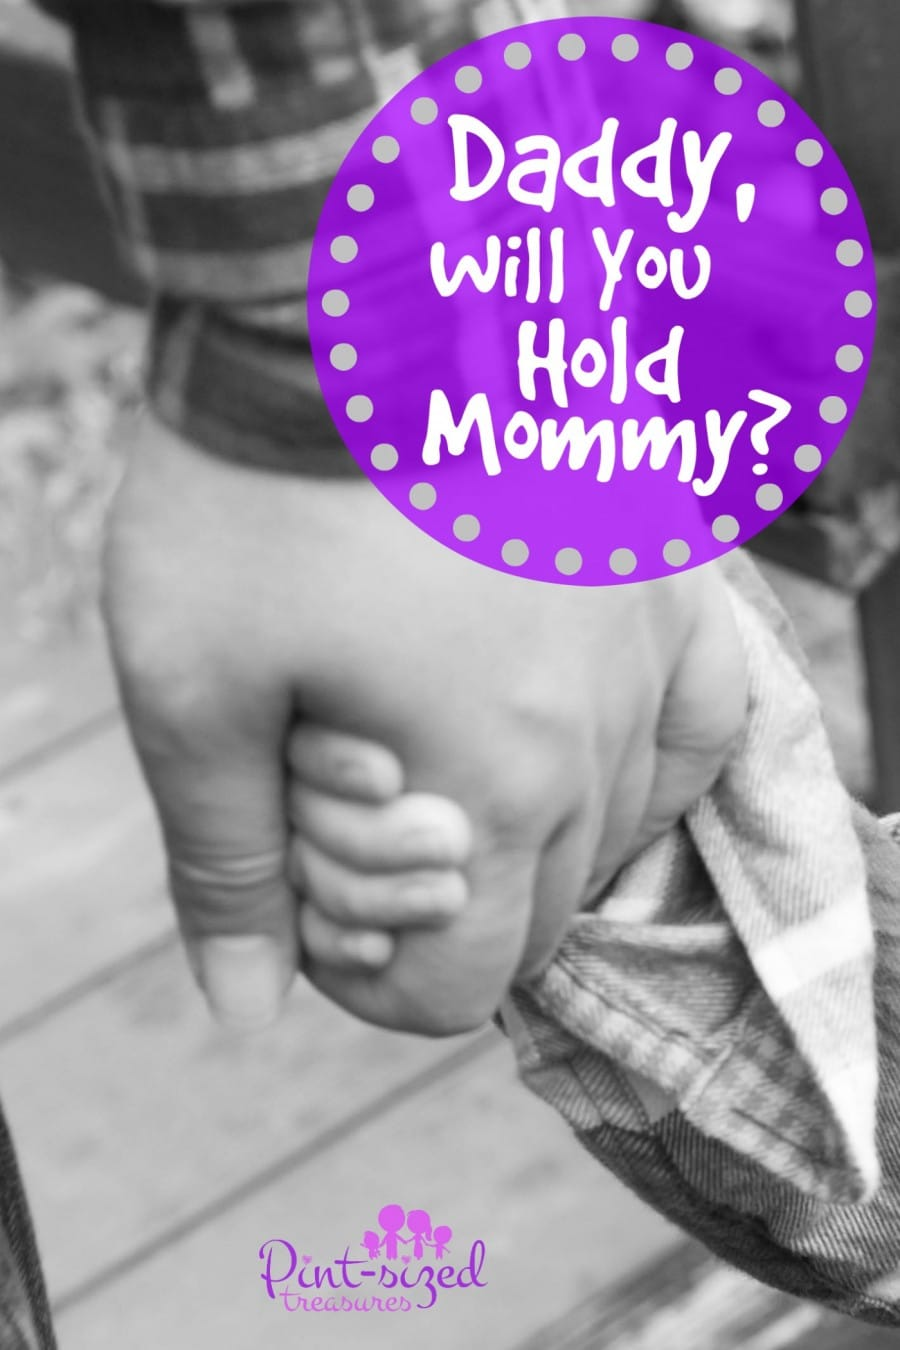 daddy will you hold mommy